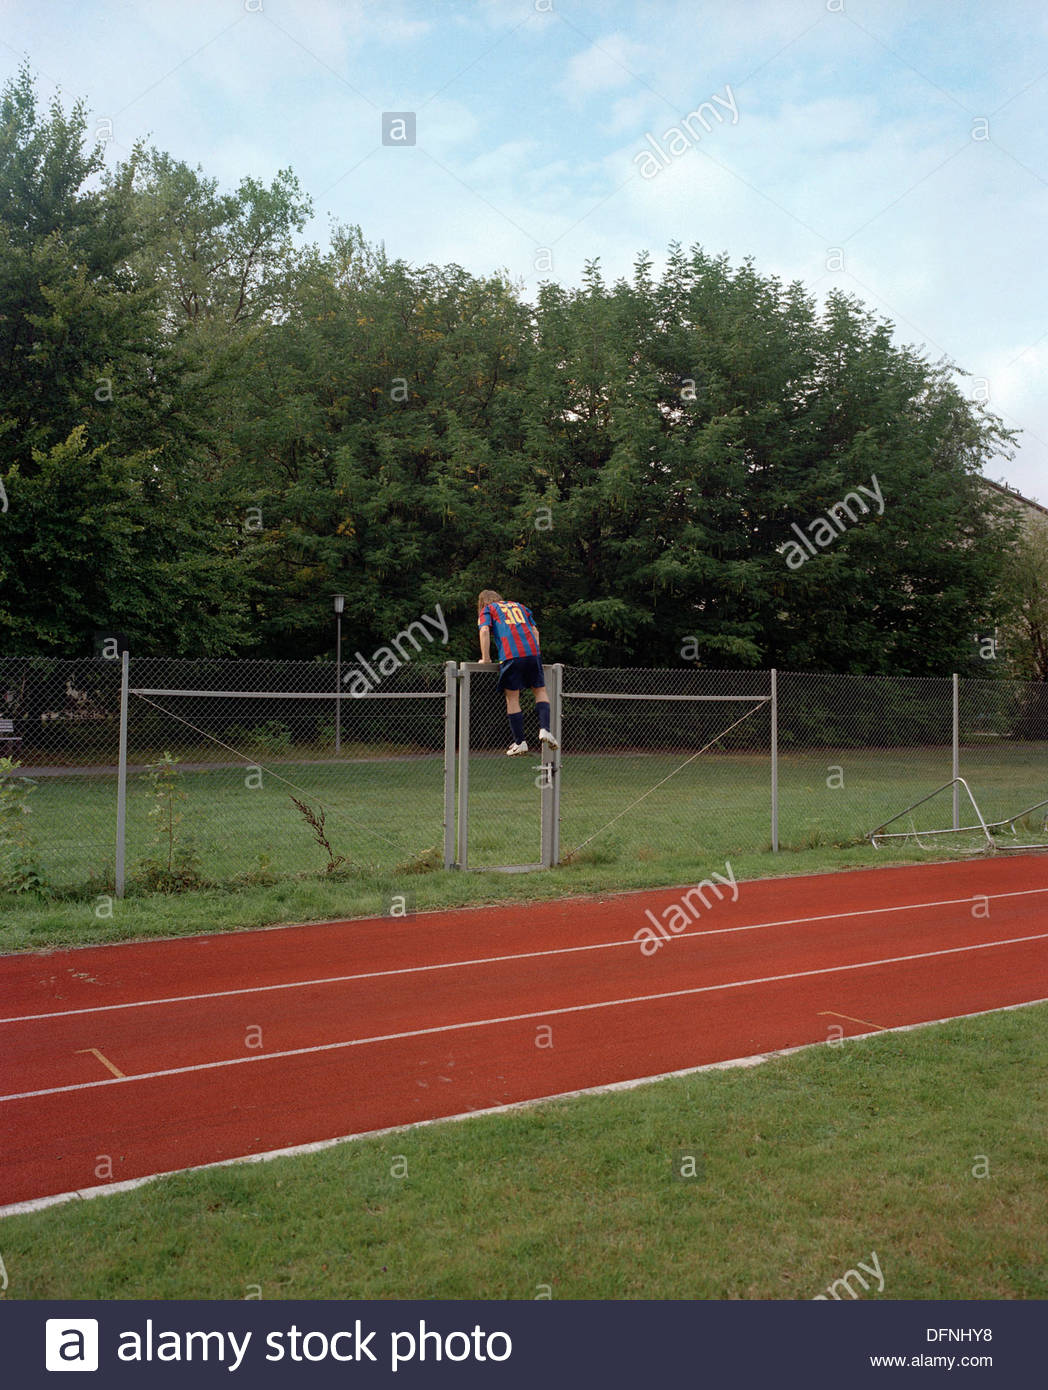 Leisure footballer dressed in Messi shirt climbs over a fence to get a ball, Munich, Upper Bavaria, Bavaria, Germany - Stock Image